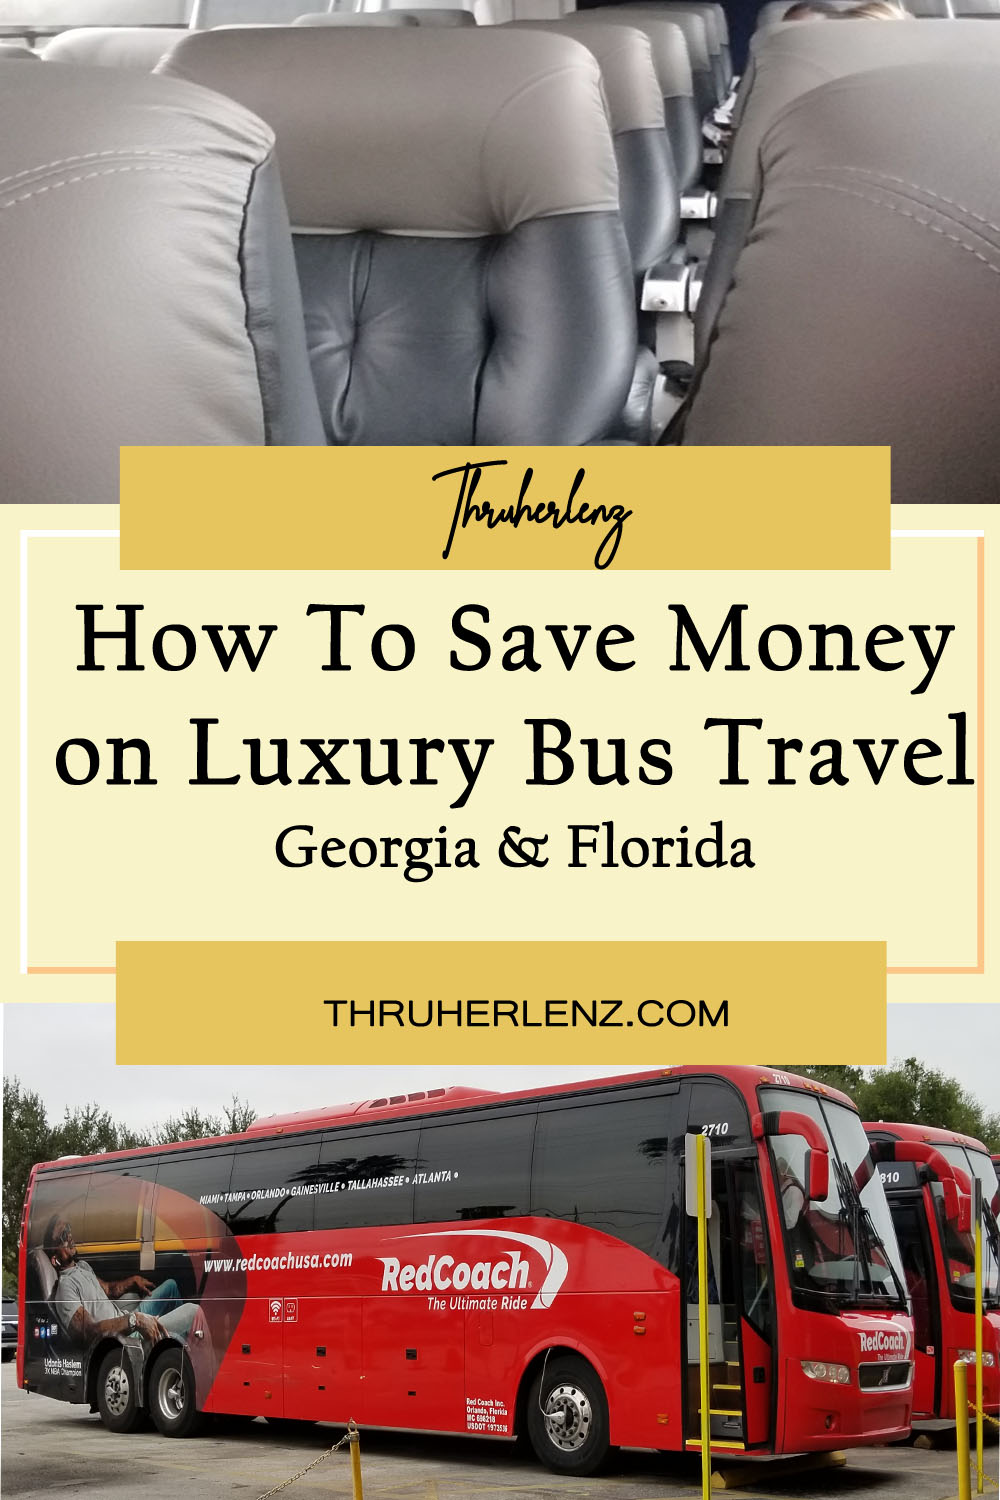 How To Save Money on Luxury Bus Travel From Georgia to Florida